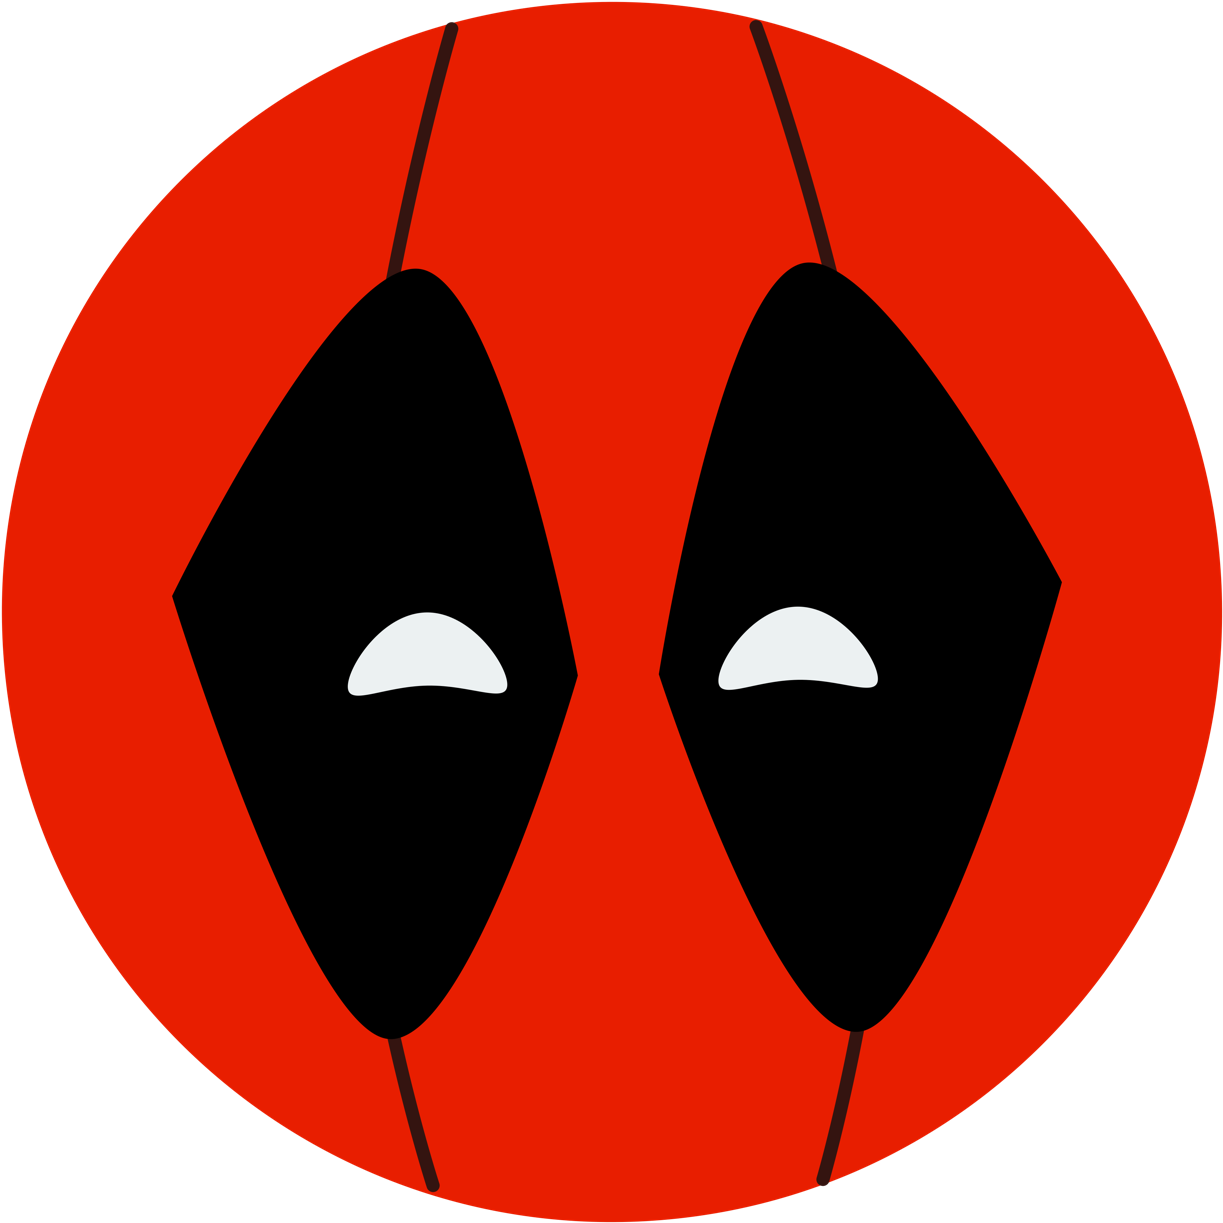 Clipart wallpaper patterns png library library Spideypool Icons And Phone Wallpaper Patterns I Threw - Wallpaper ... png library library